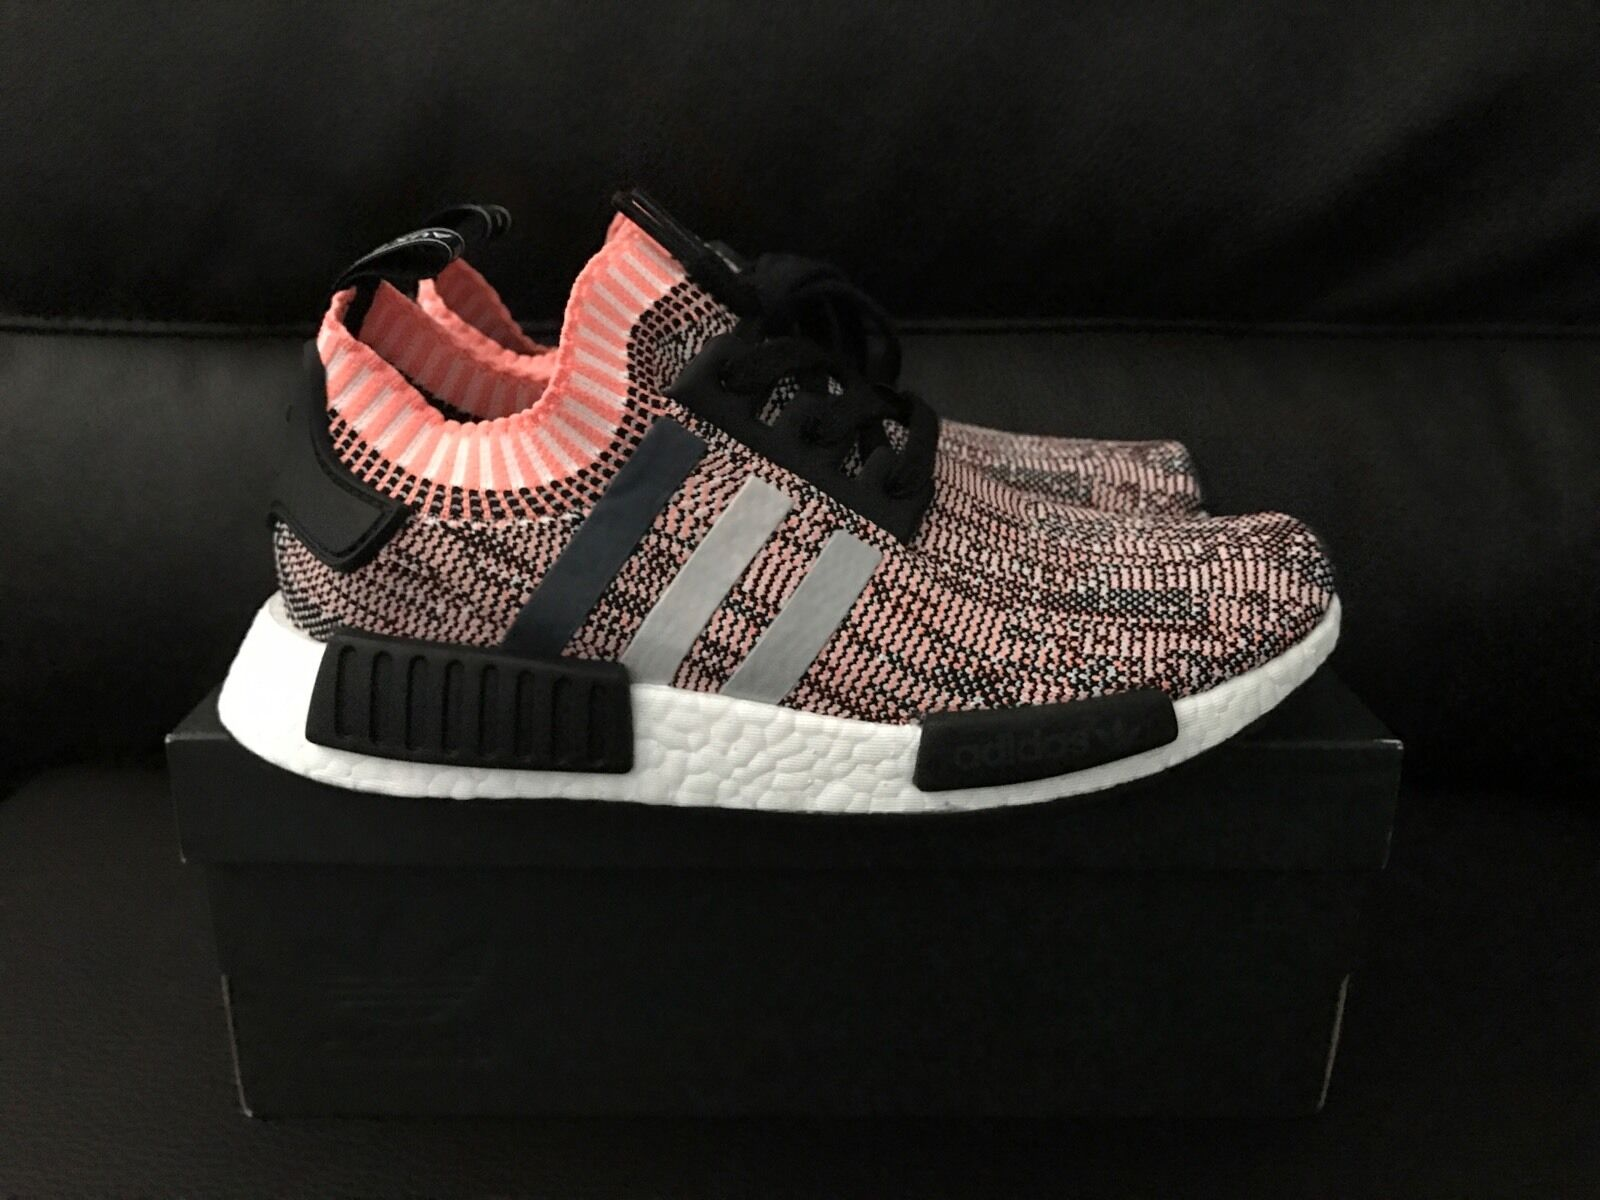 Adidas NMD R1 Primeknit Boost Salmon Pink Camo Athletic Sneakers Running shoes 8